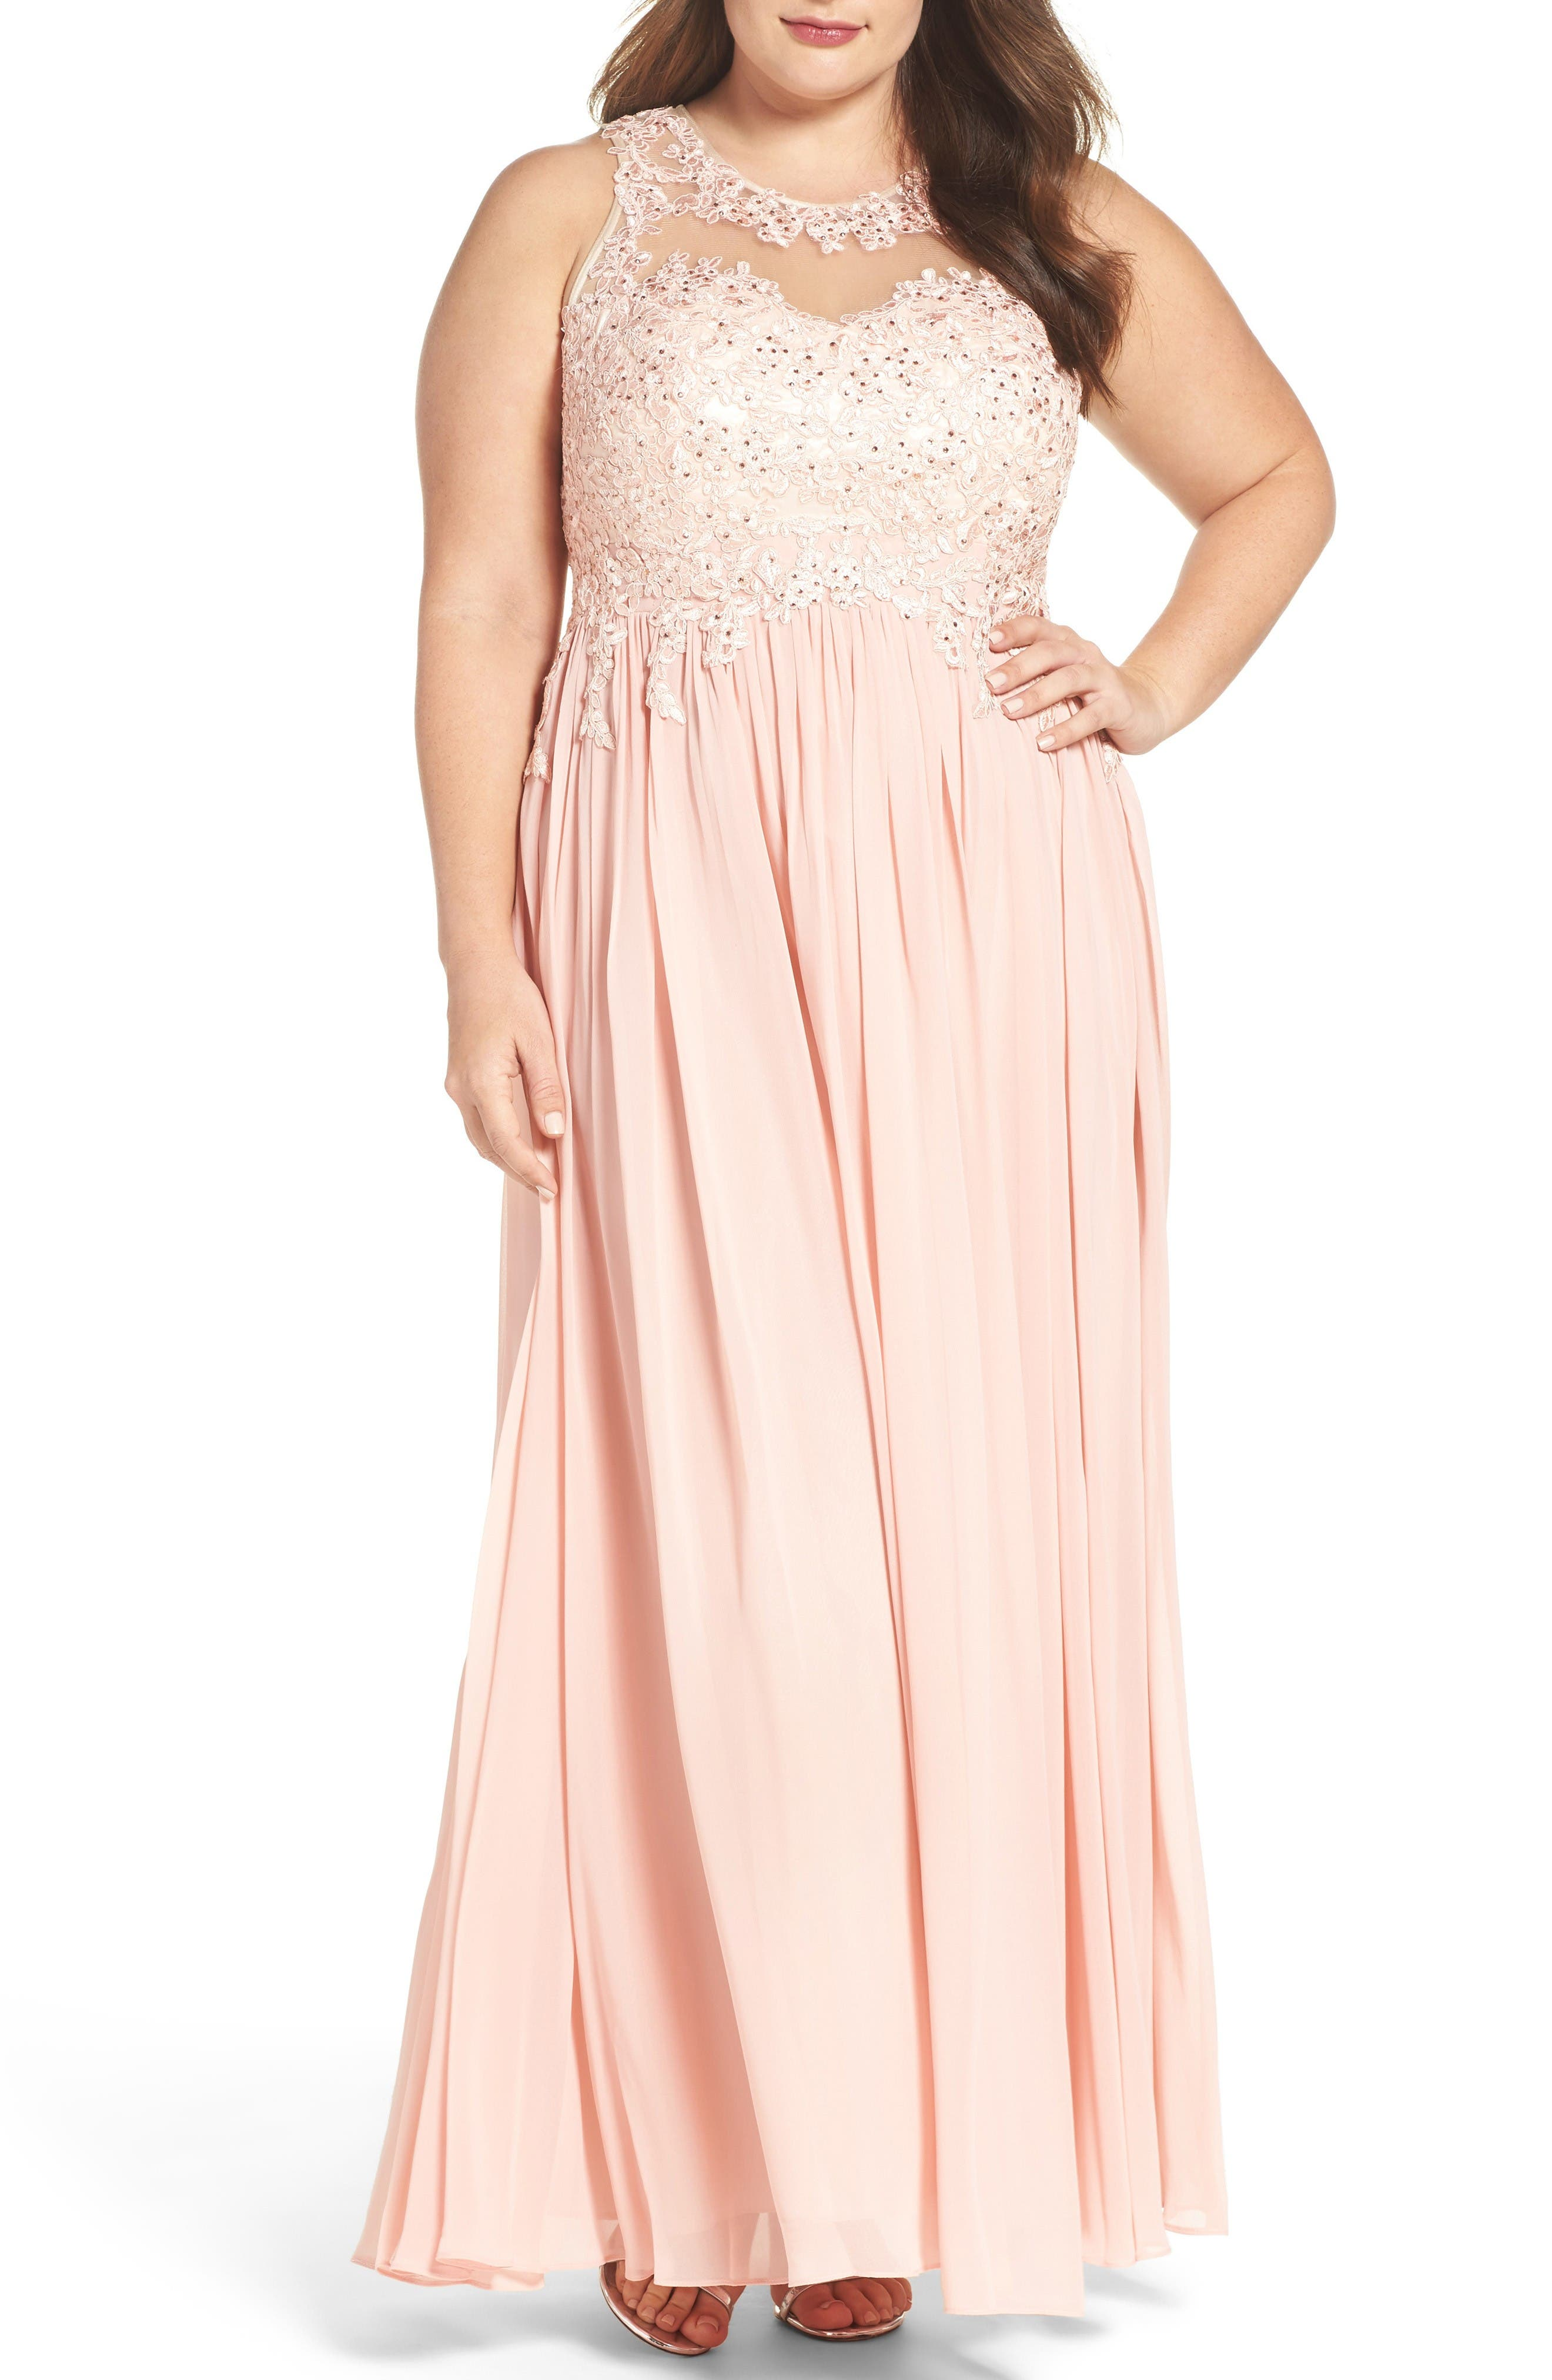 Main Image - DECODE 1.8 Embellished A-Line Chiffon Gown (Plus Size)